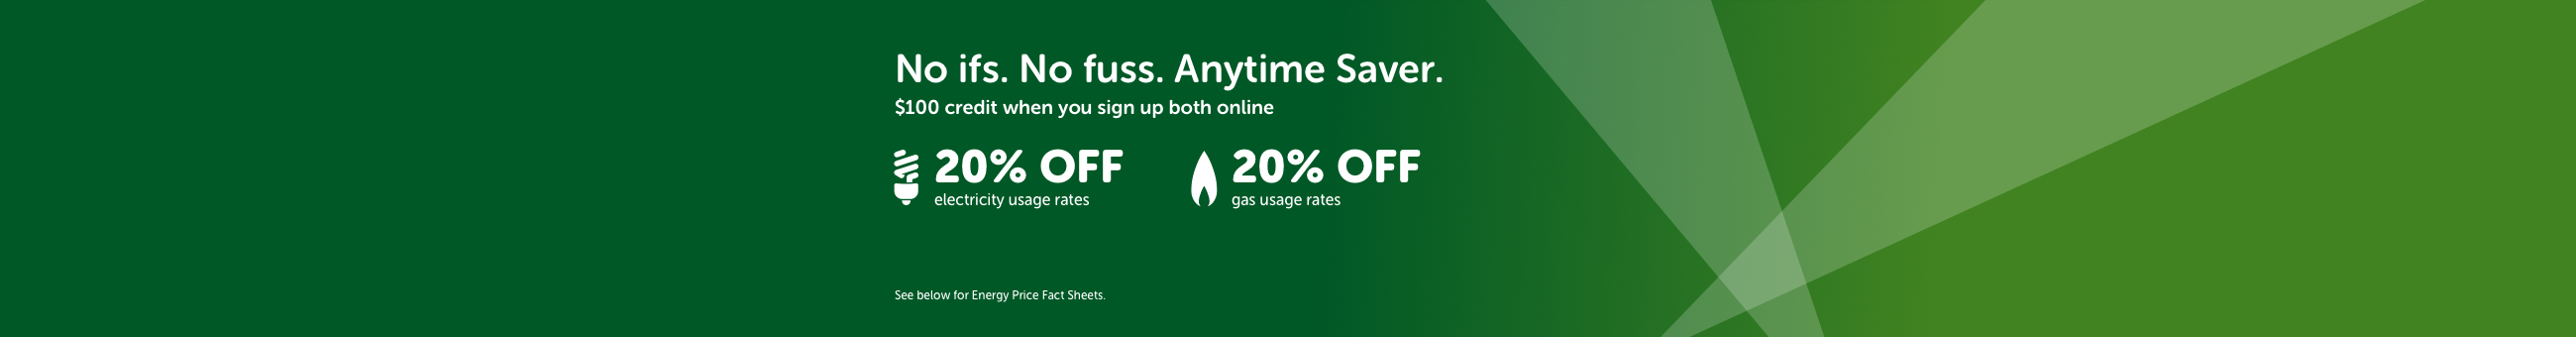 No ifs. No fuss. Anytime Saver. $50 credit when you sign up online.